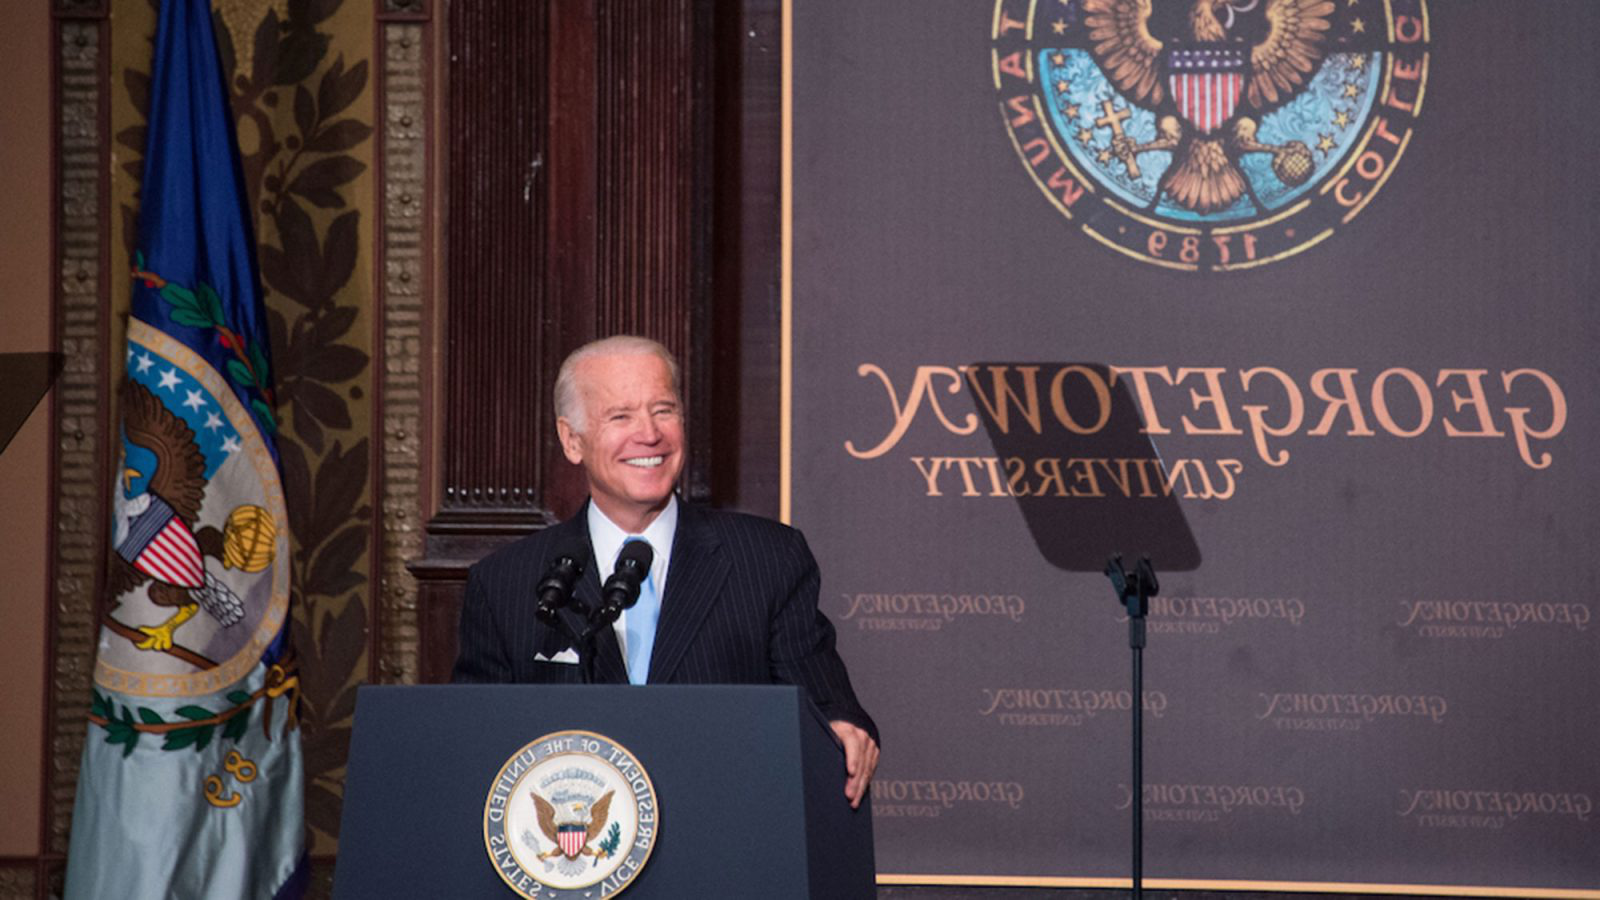 Joe Biden stands on the stage in Gaston Hall behind a lectern with a 365体育备用网址 placard in the background.